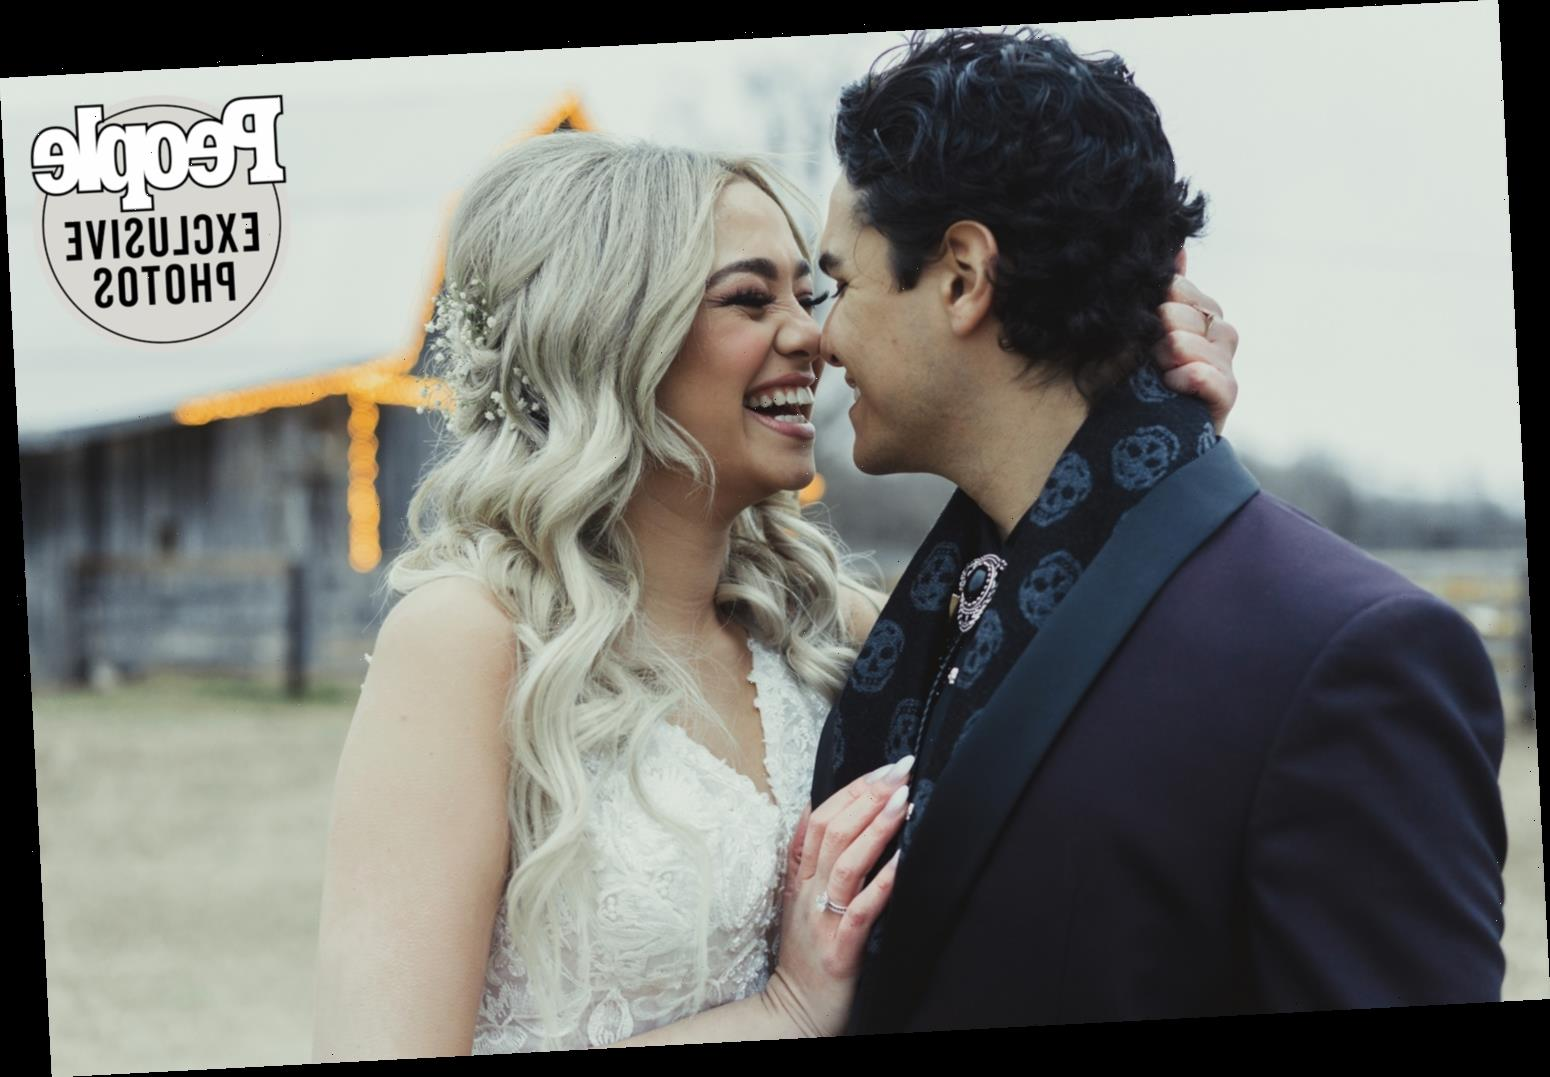 American Idol's Kat and Alex Tie the Knot in Intimate 'Dream' Wedding — See the Photos!